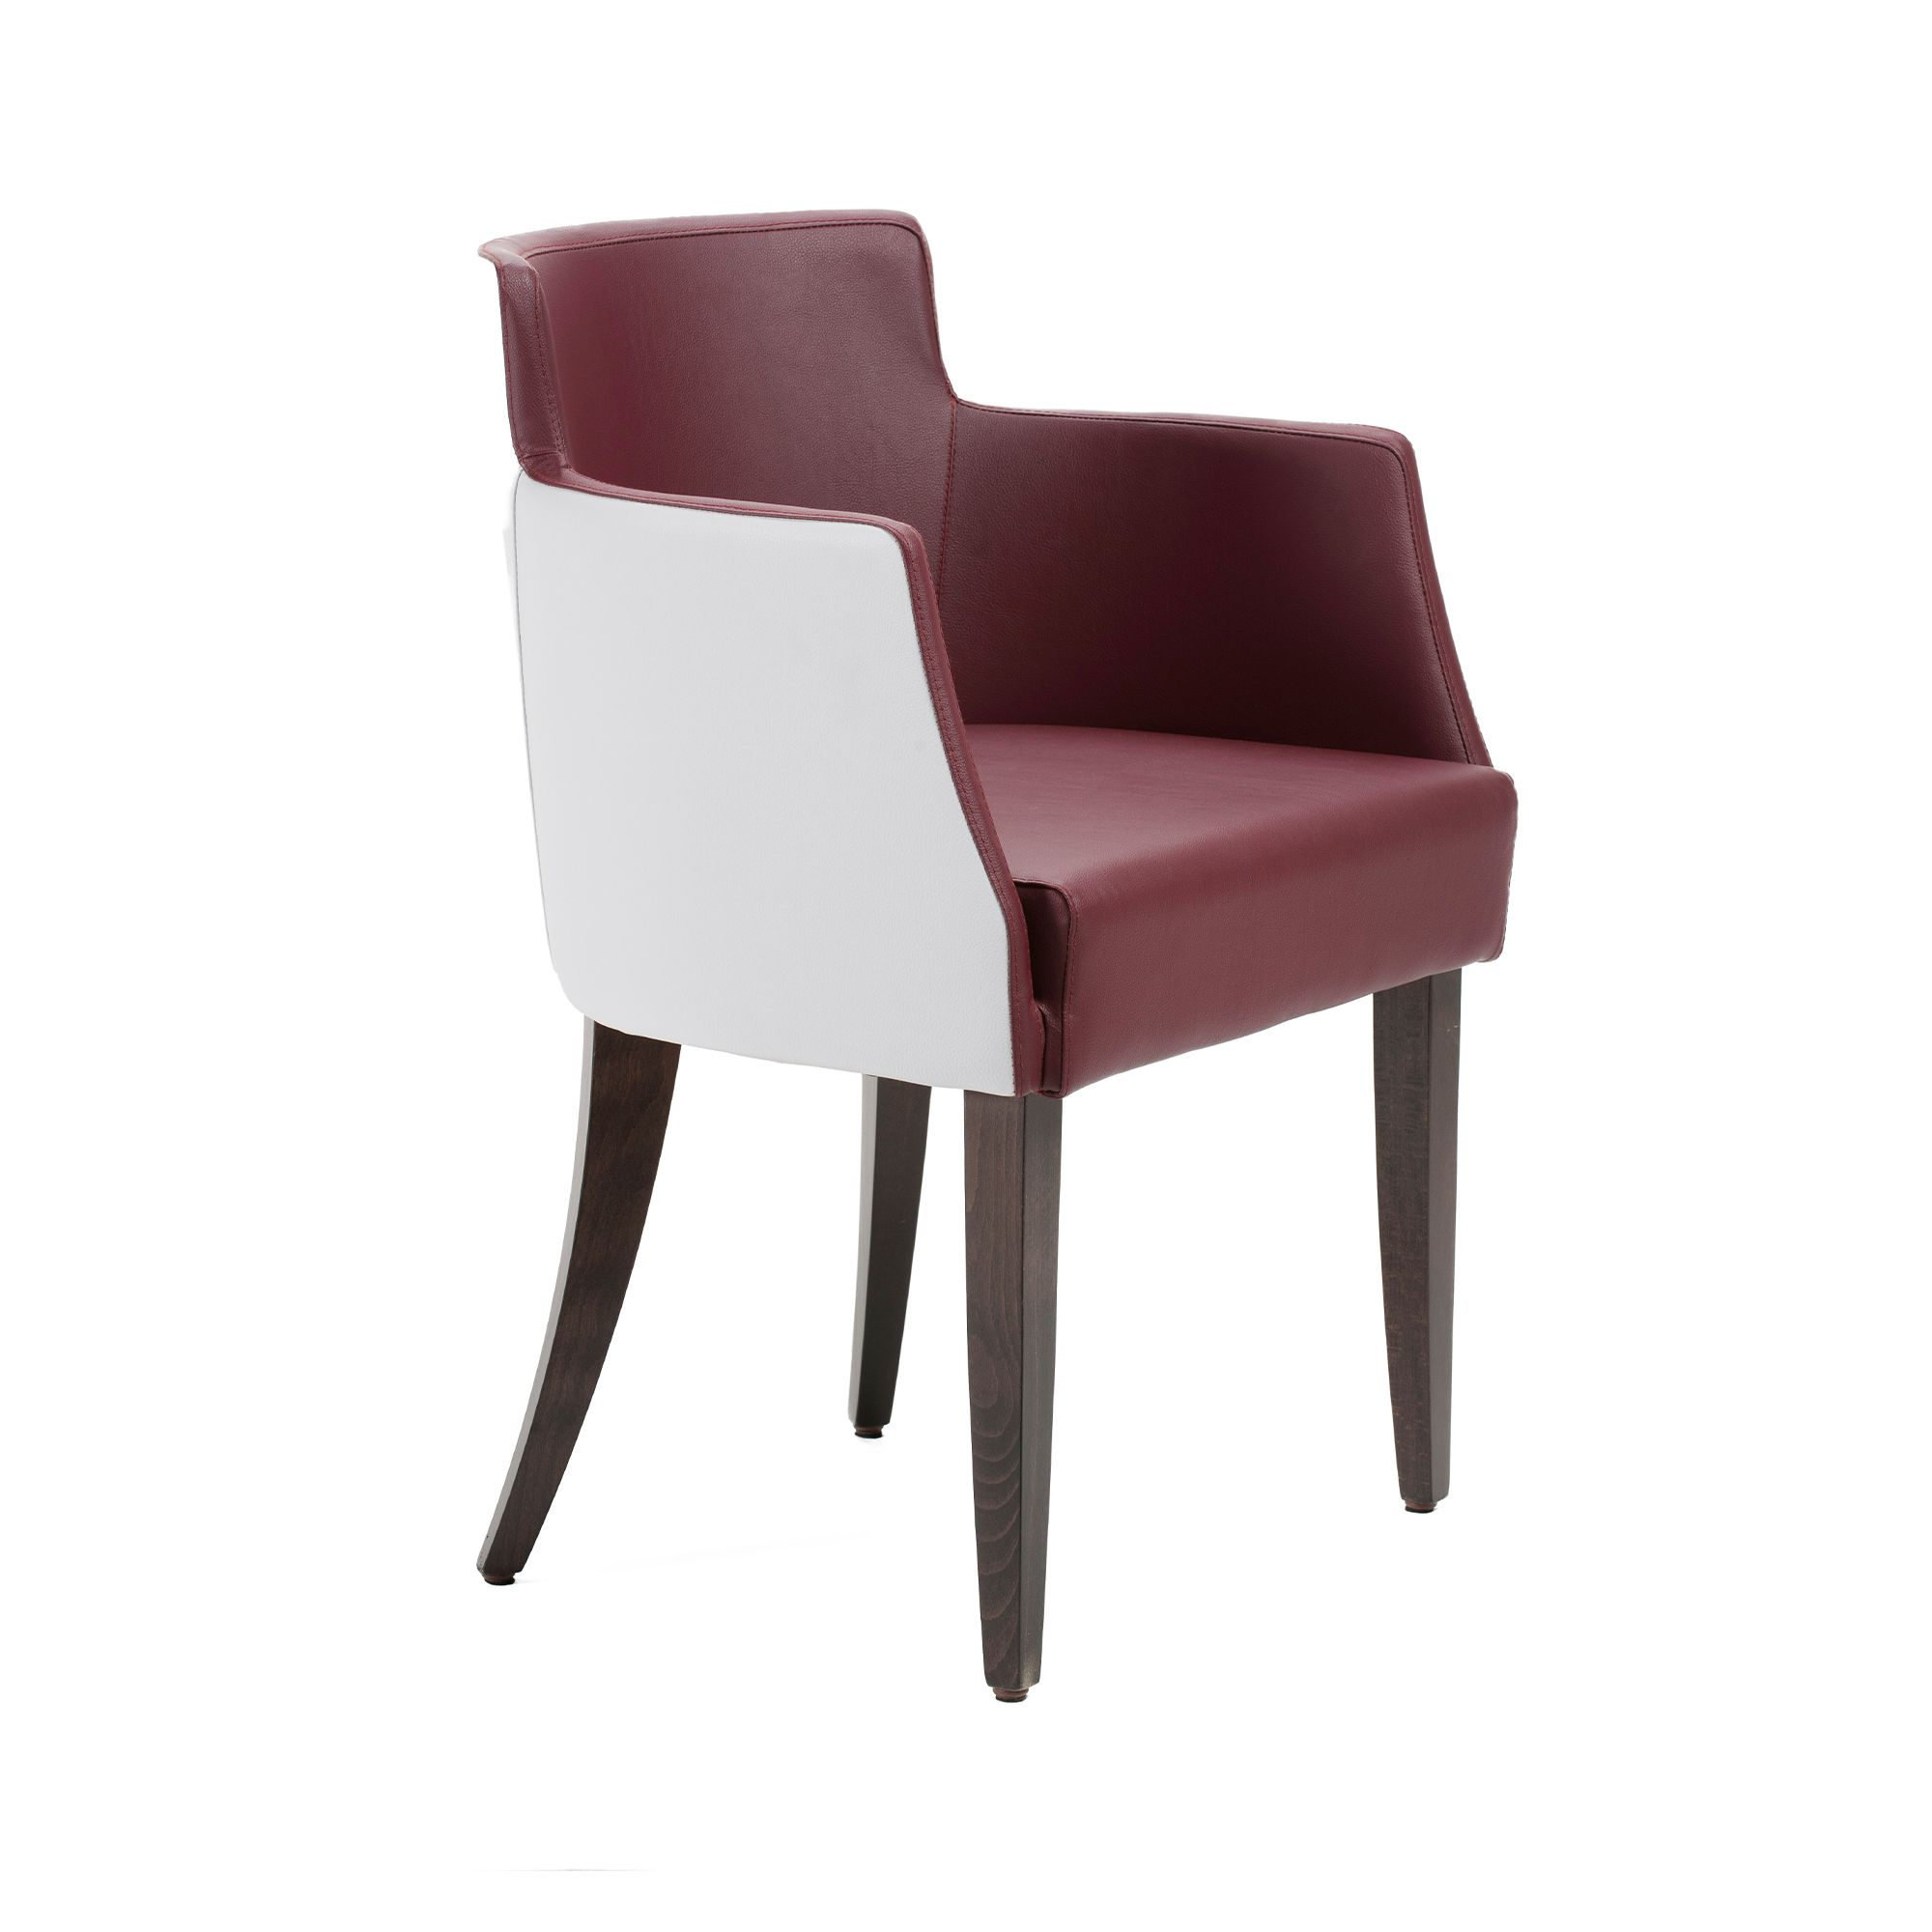 Model 836 armchair in modern style